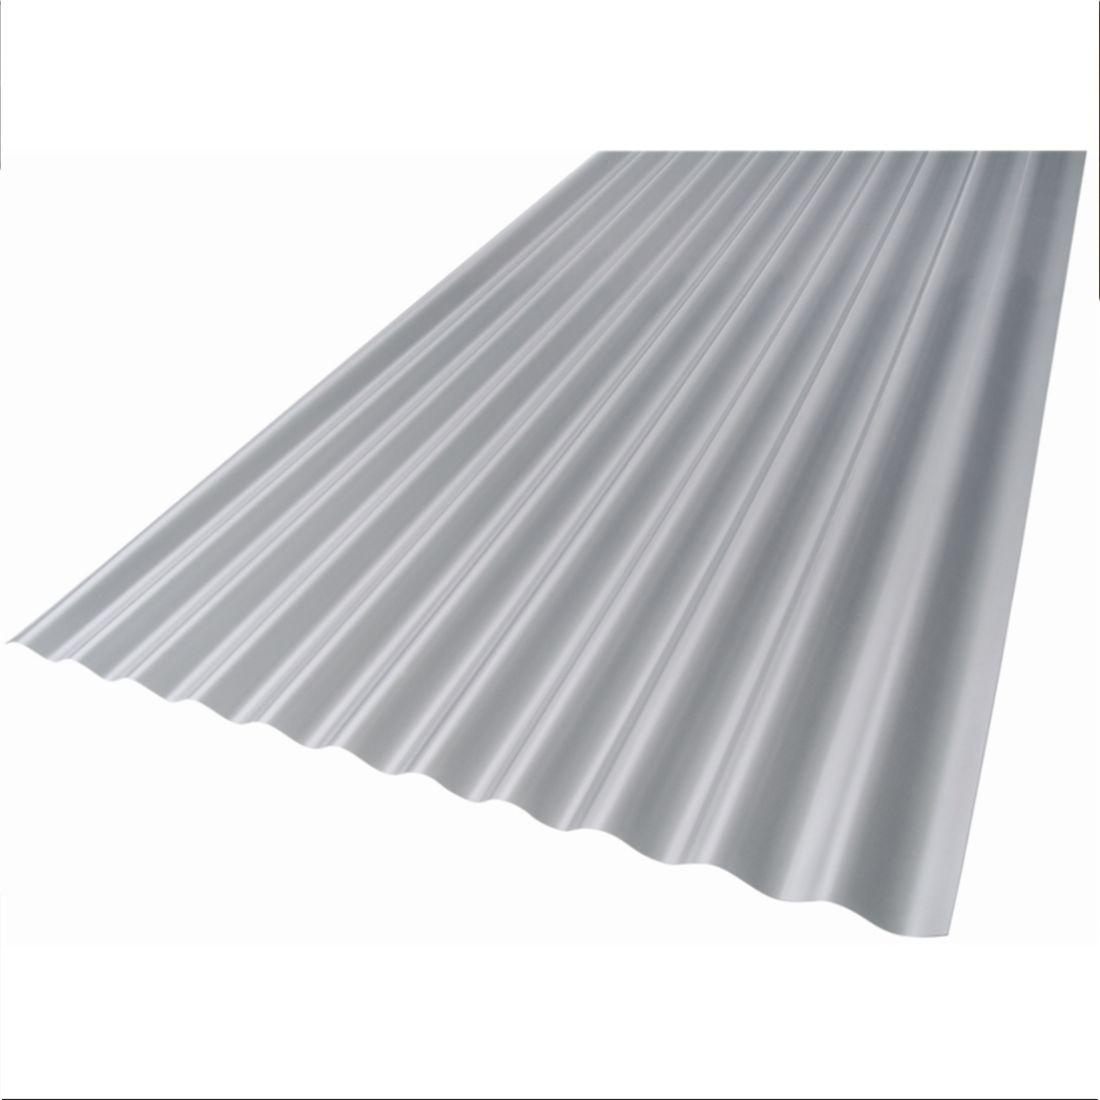 CoolTech Corrugated Grey 6000 x 860mm